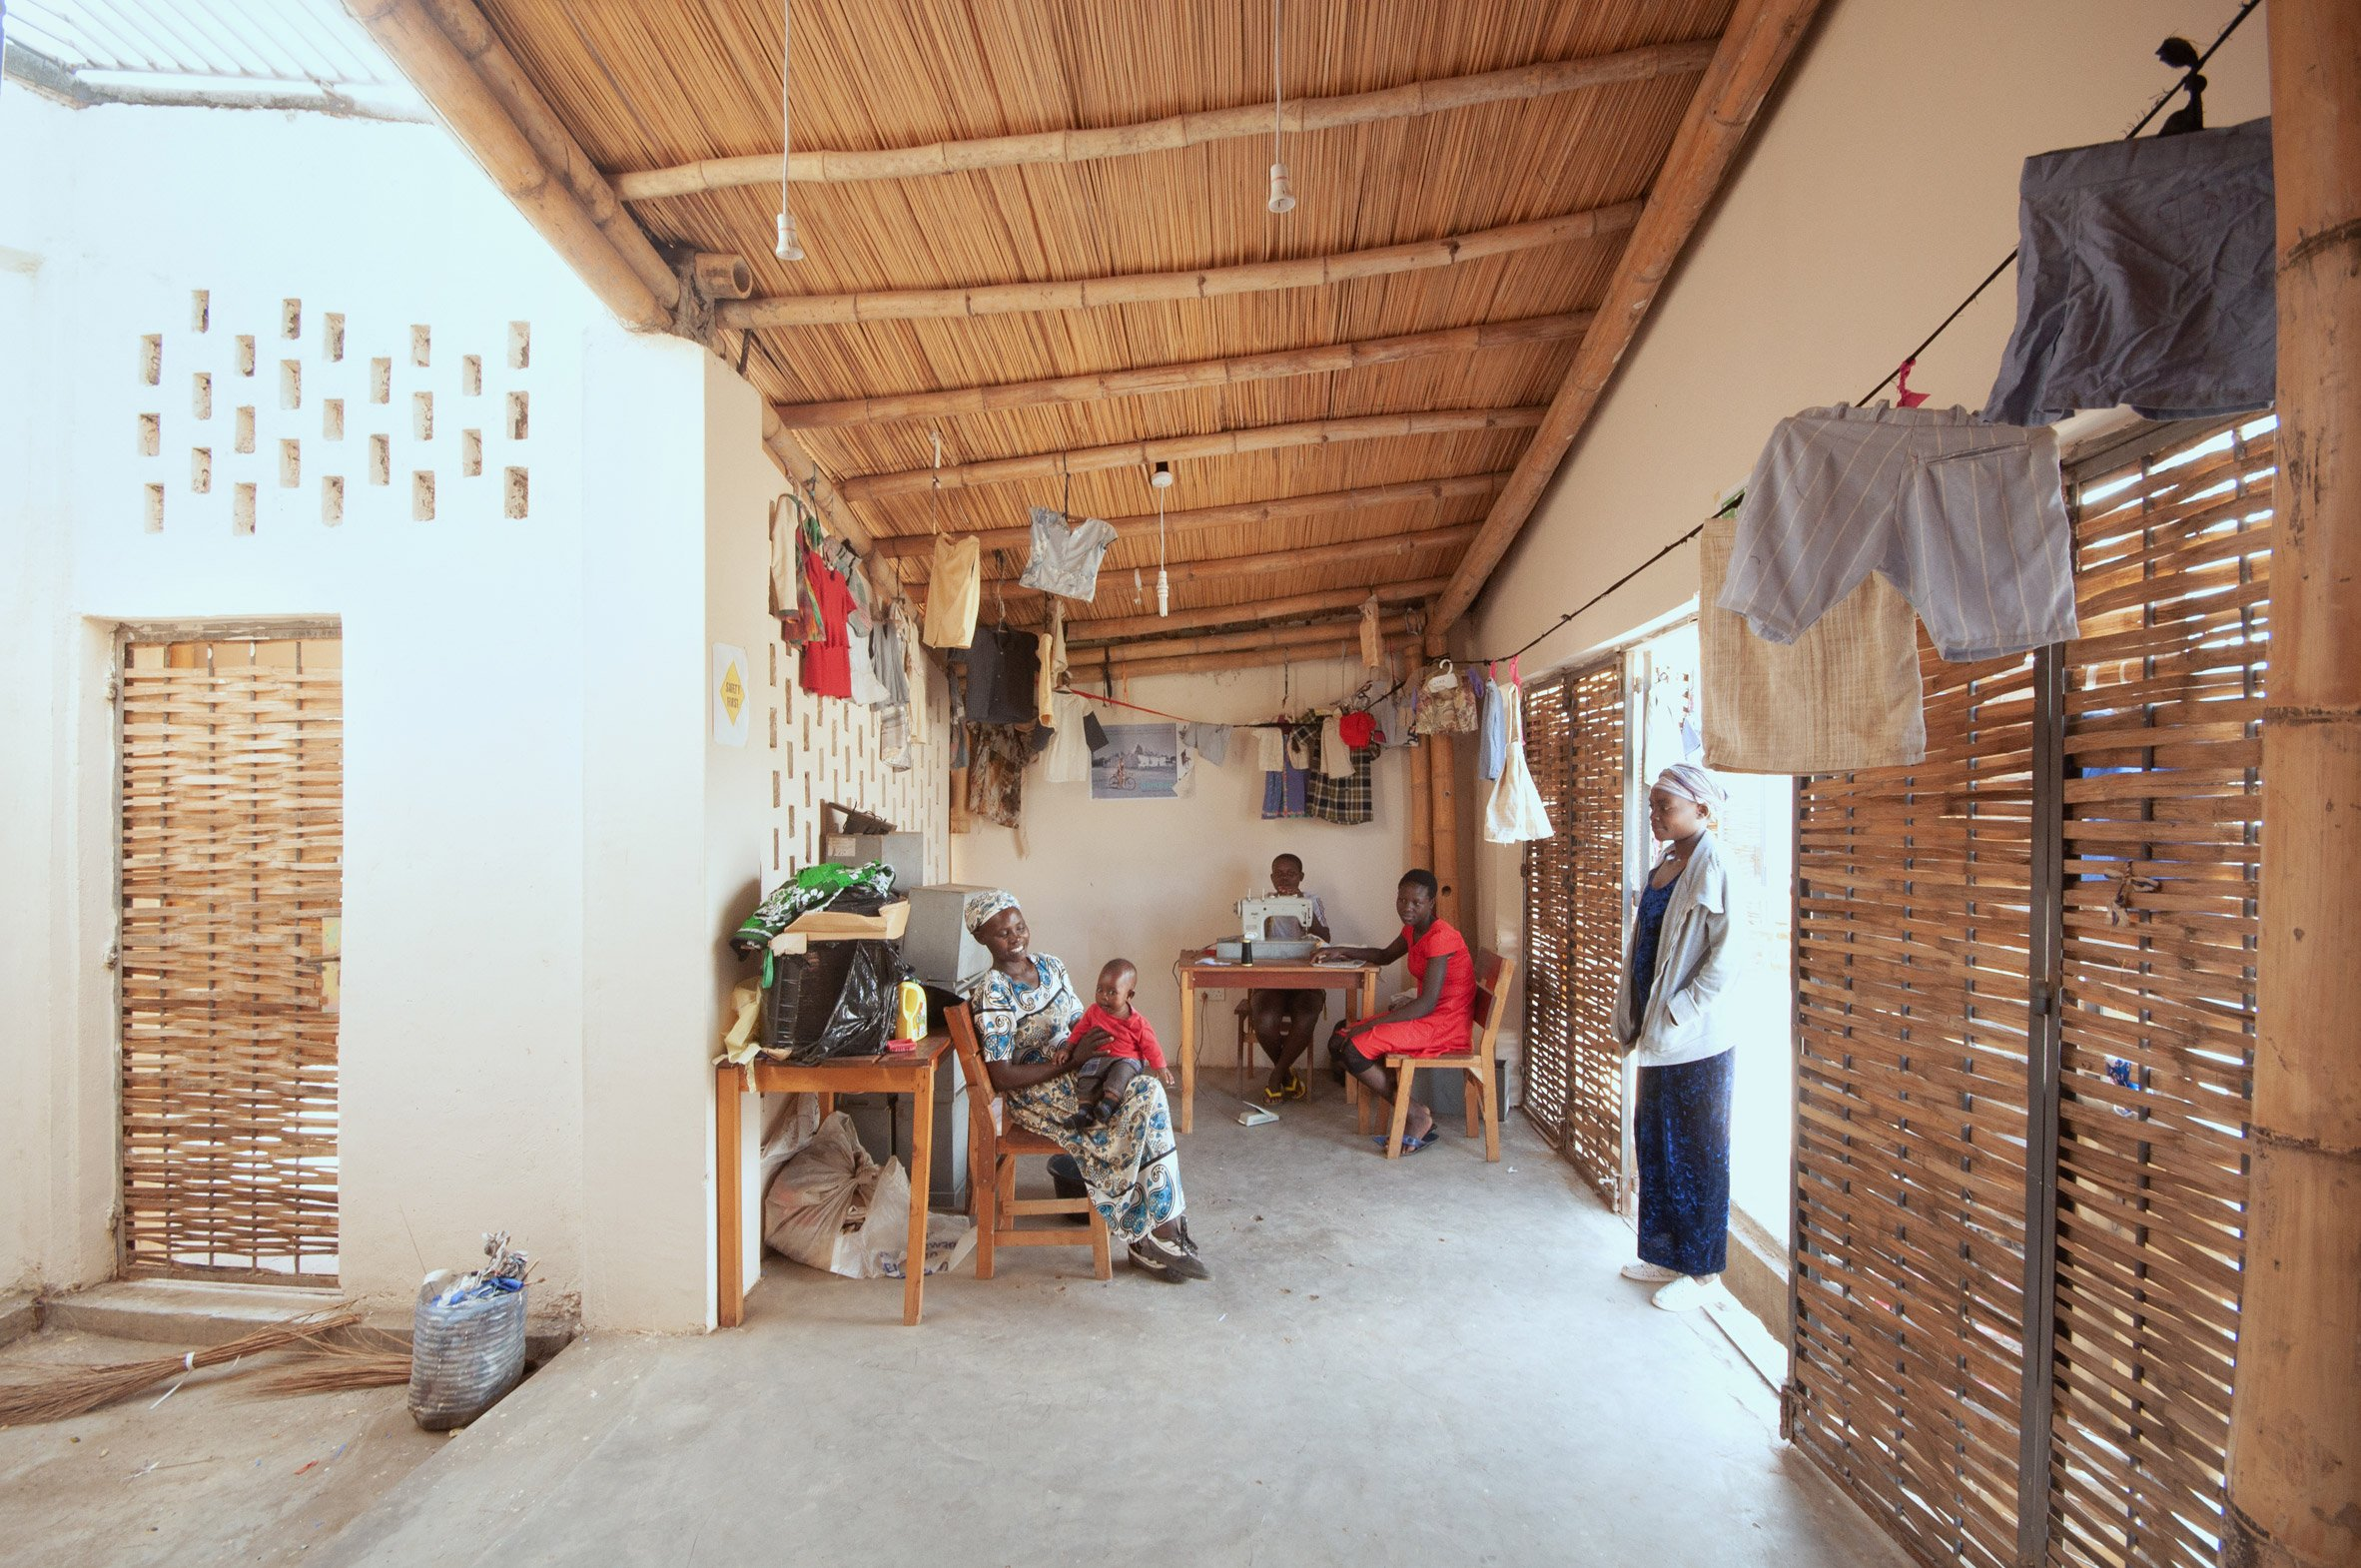 Interiors of the Okana Centre for Change in Kenya, by Laura Katharina Straehle and Ellen Rouwendal